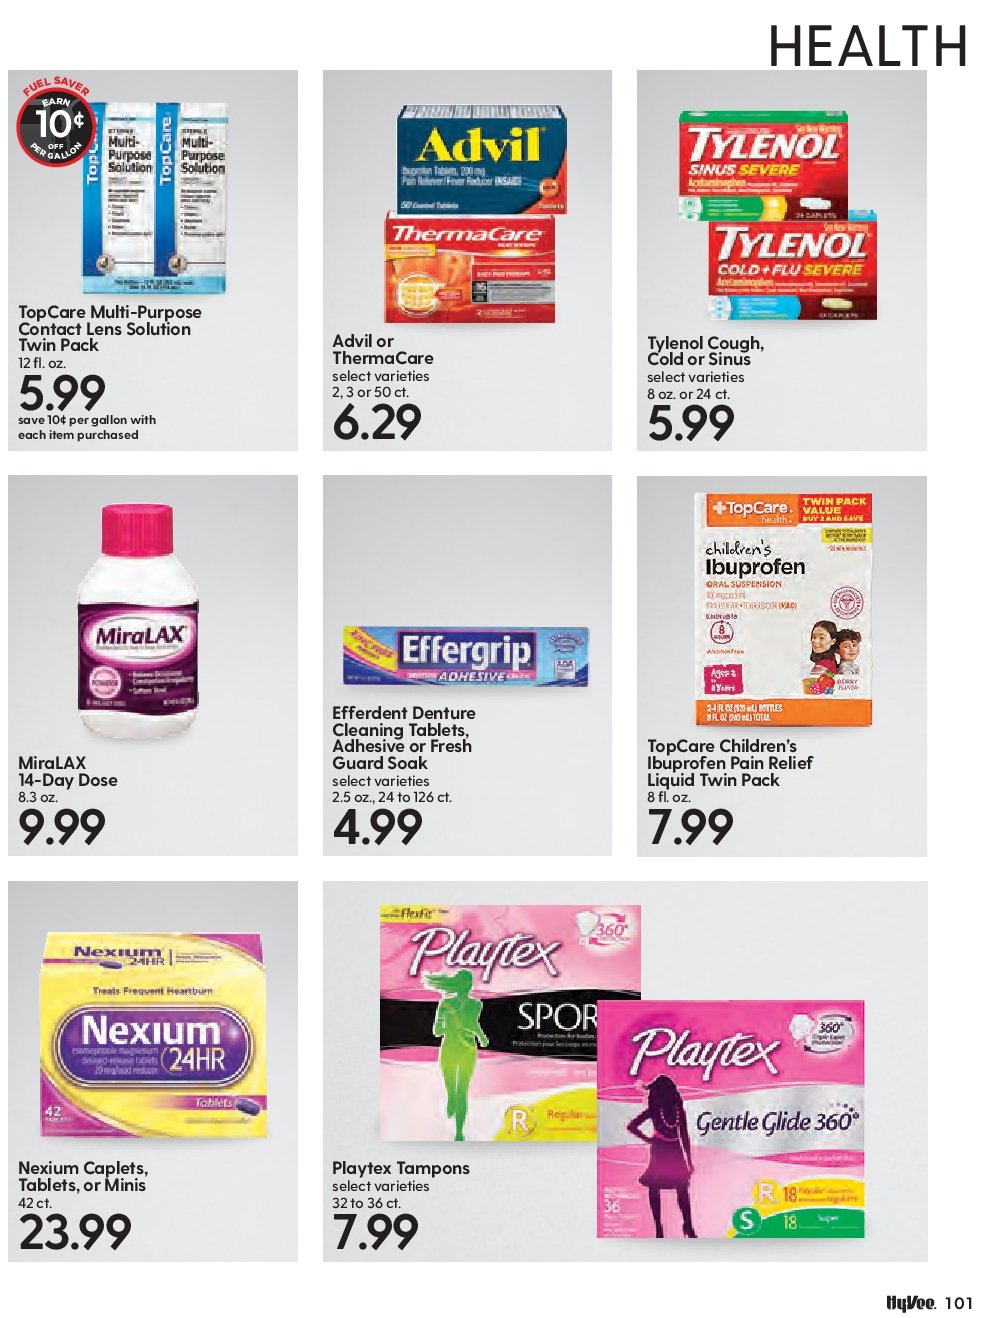 Hy-Vee Flyer - 11.01.2018 - 12.02.2018 - Sales products - advil, lens, miralax, thermacare, tylenol, playtex, pain relief. Page 103.